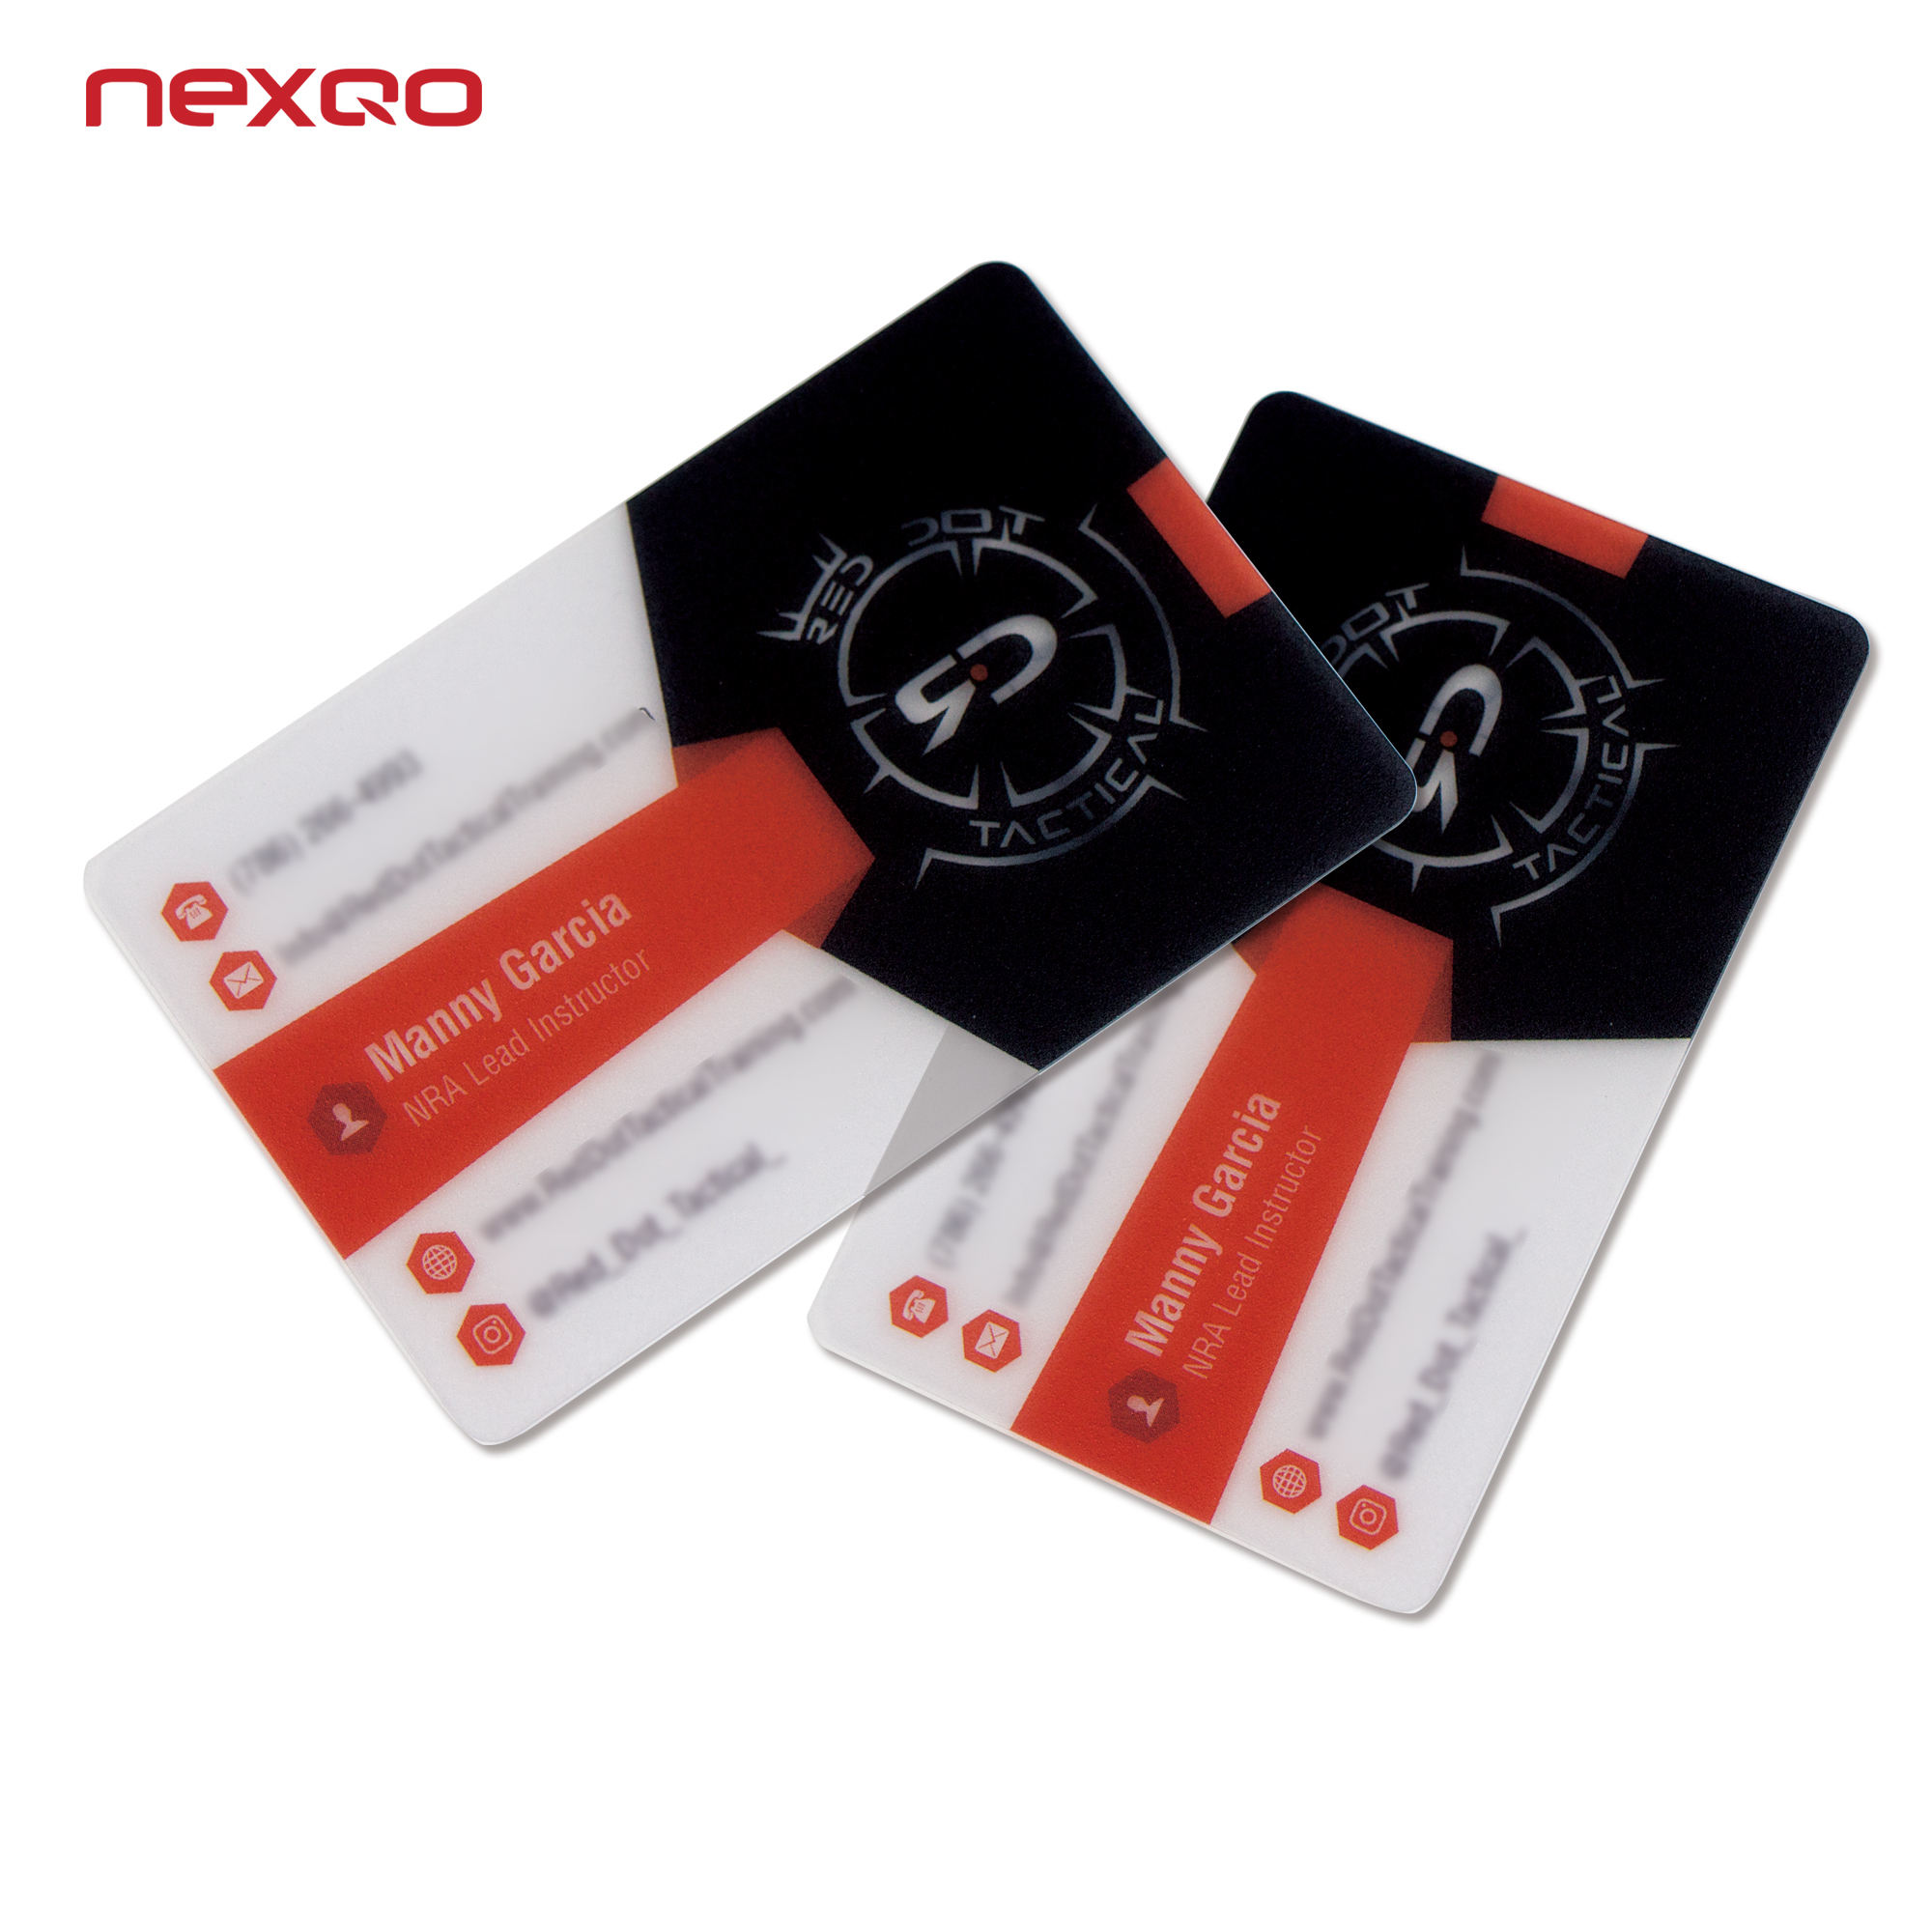 Business [ Pvc Cards ] Plastic Pvc Card Cheap Professional Clear Transparent PVC Plastic Business Cards With Chip